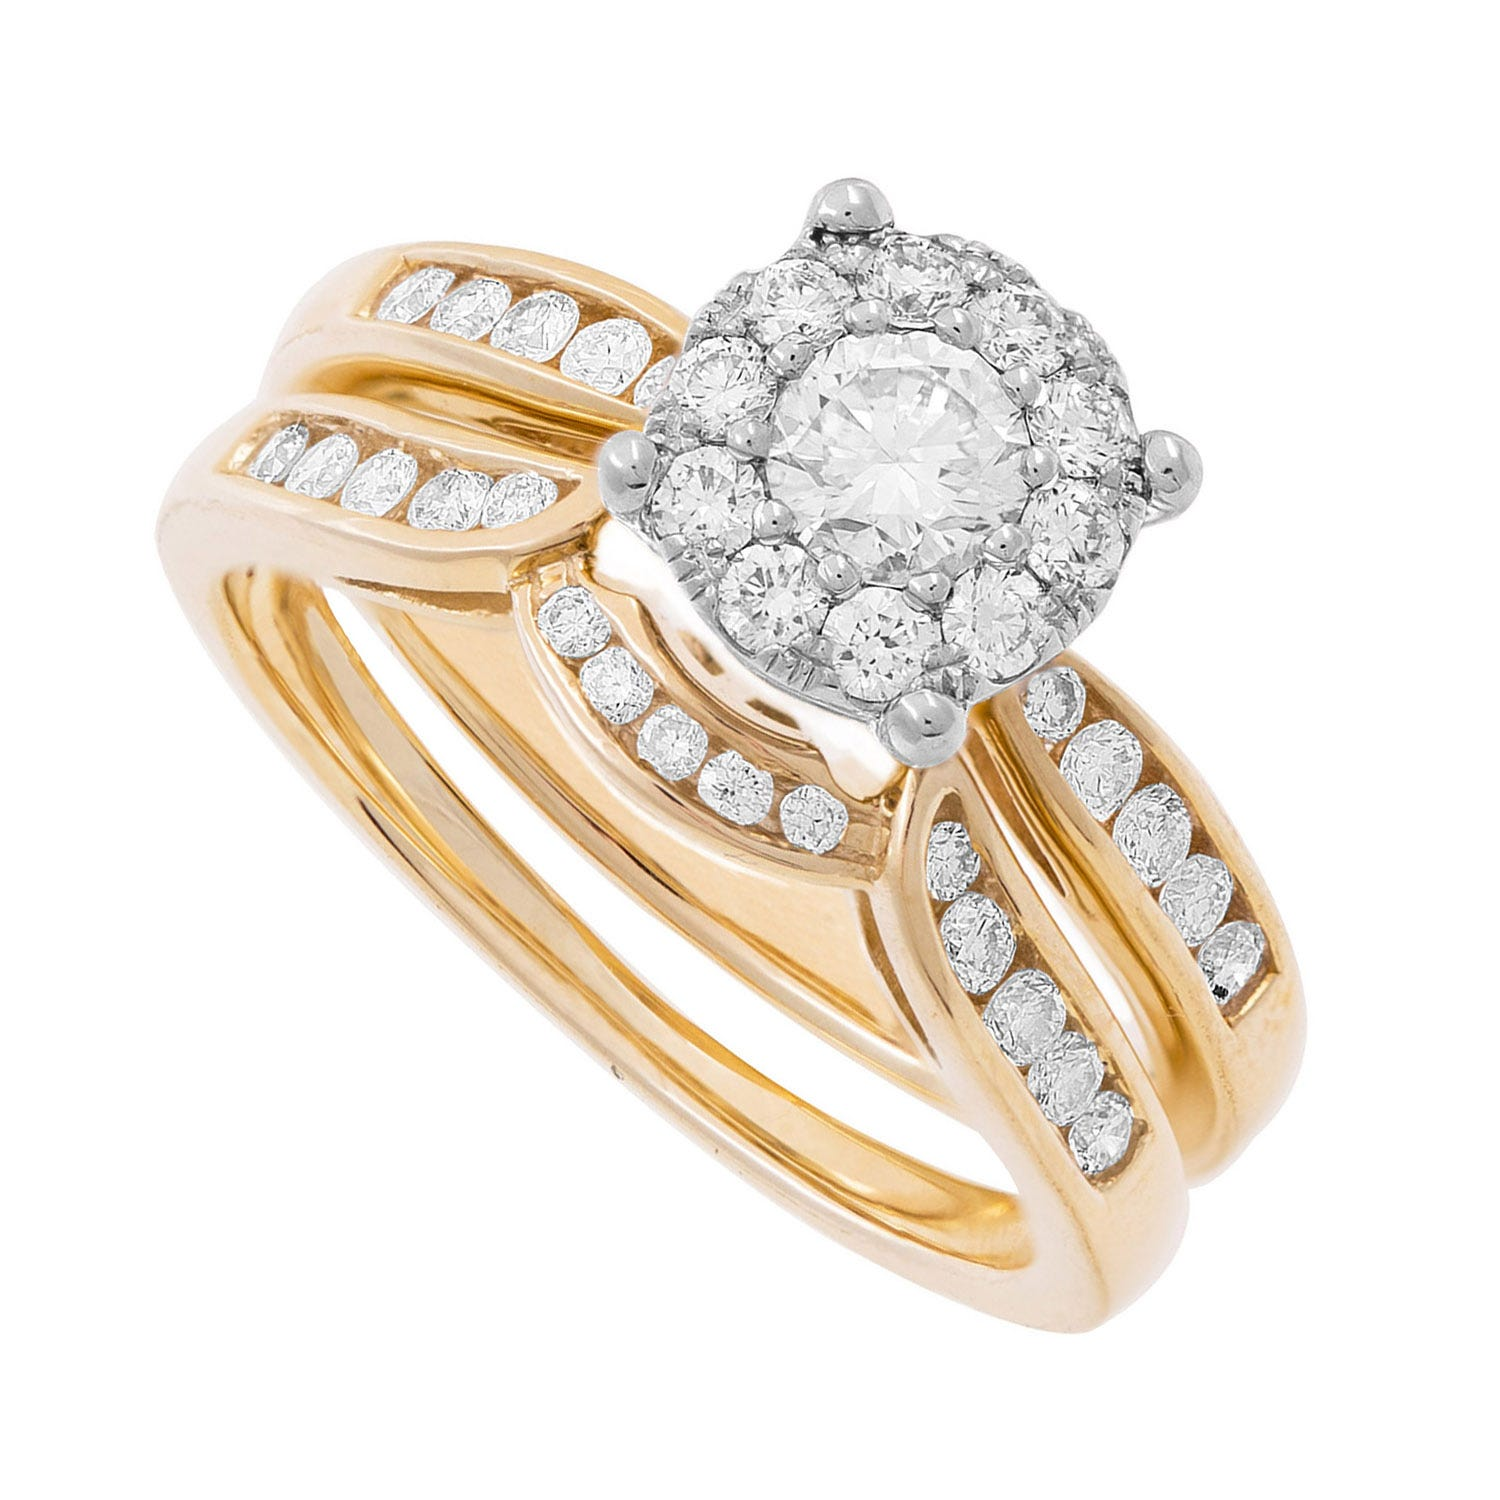 Starburst Collection ladies 9ct gold 0.50 carat diamond bridal set